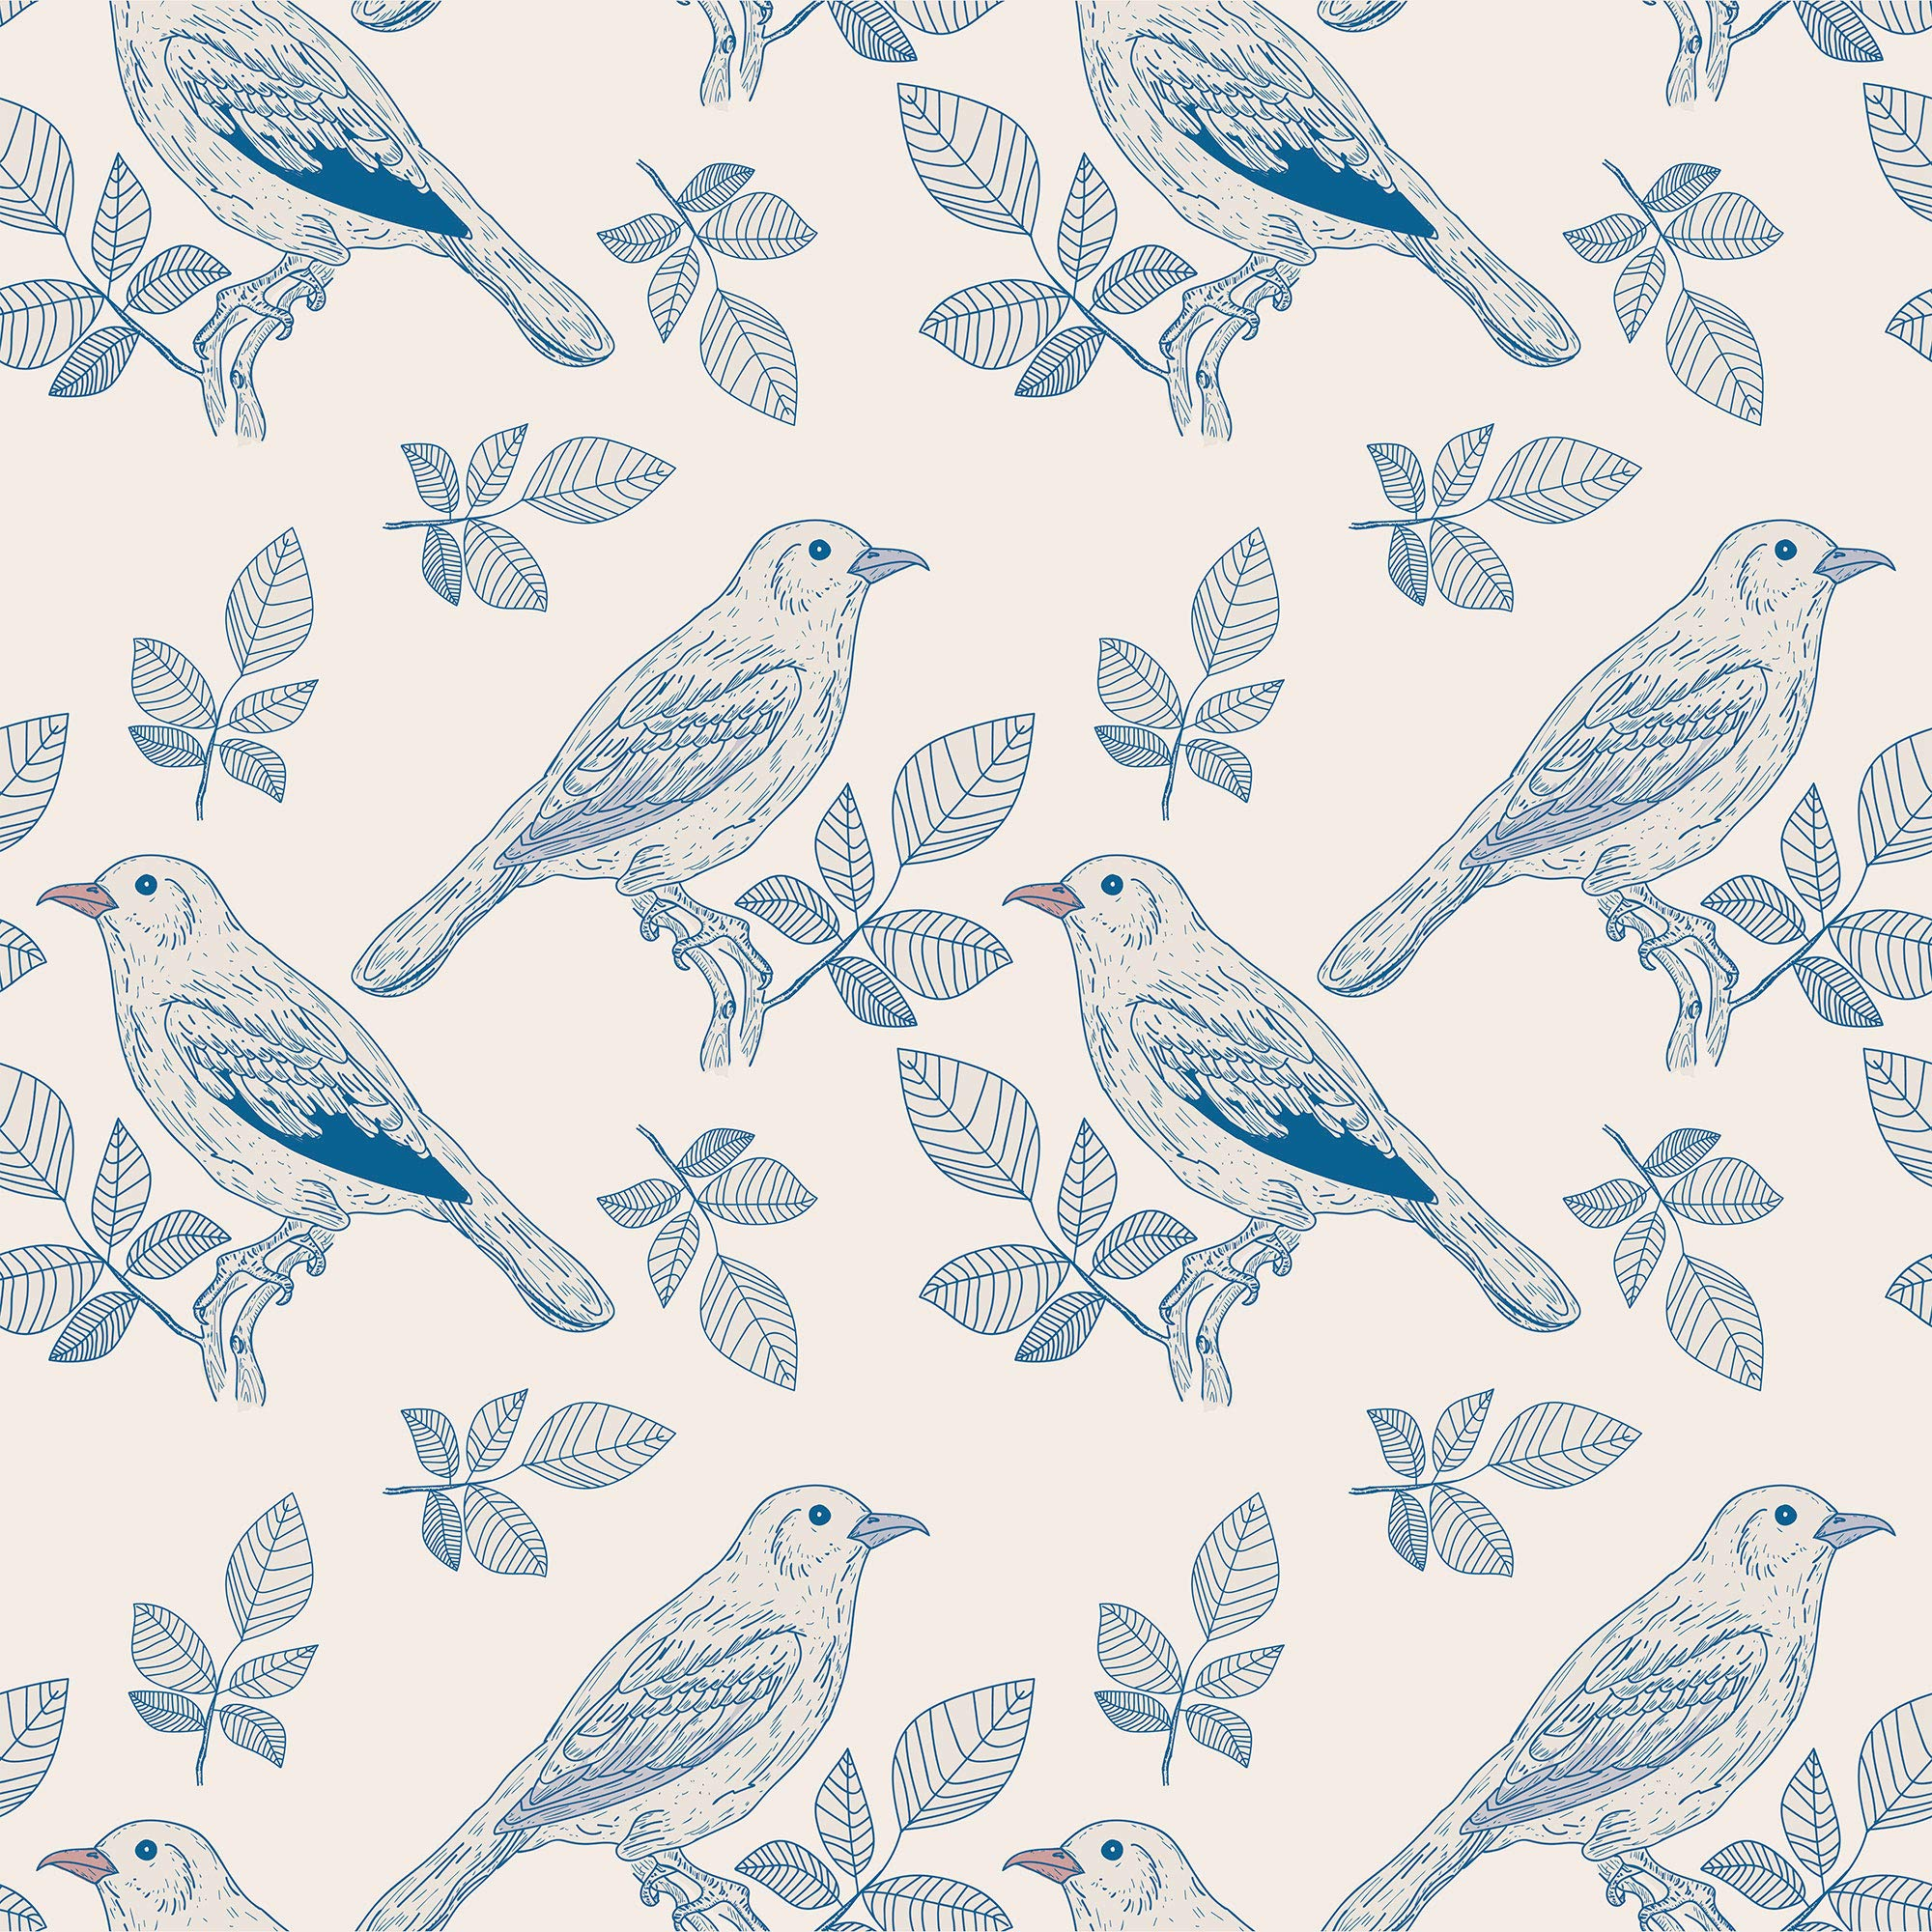 WallsByMe Peel and Stick Silver and Blue Floral Animal Removable Wallpaper 3836-2ft x 10.5ft (61x320cm) - WallFab - 7mil